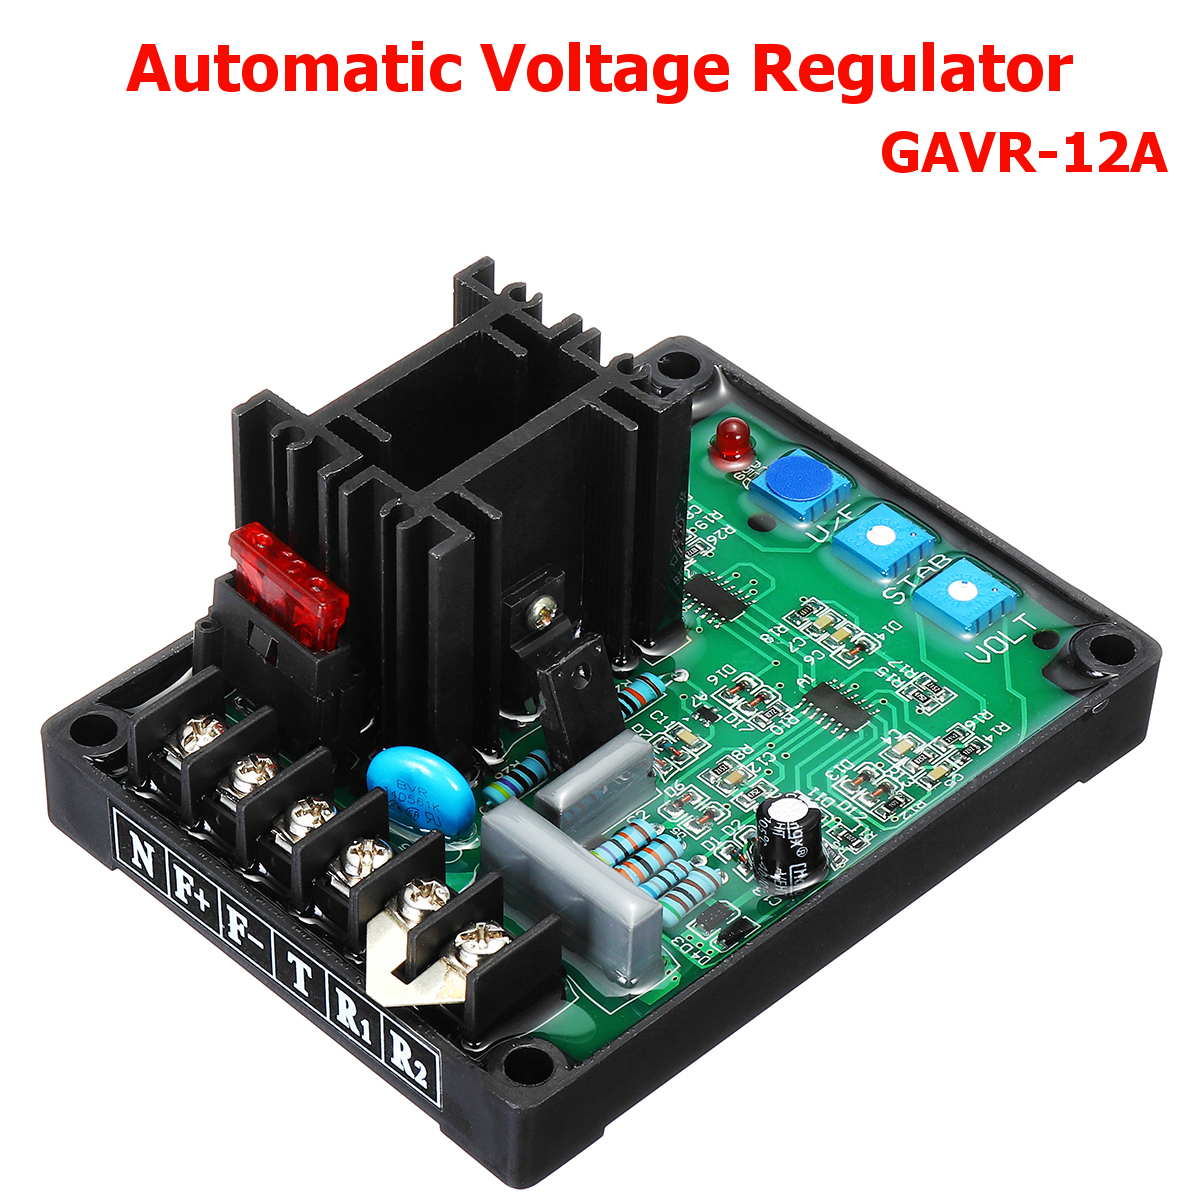 Automatic Voltage Regulator AVR GAVR-12A 220/400VAC Under Frequency Protection Soft Start Voltage Ramping EMI Suppression Stable generator automatic voltage regulator mx341 geneartor avr red with soft start voltage ramping